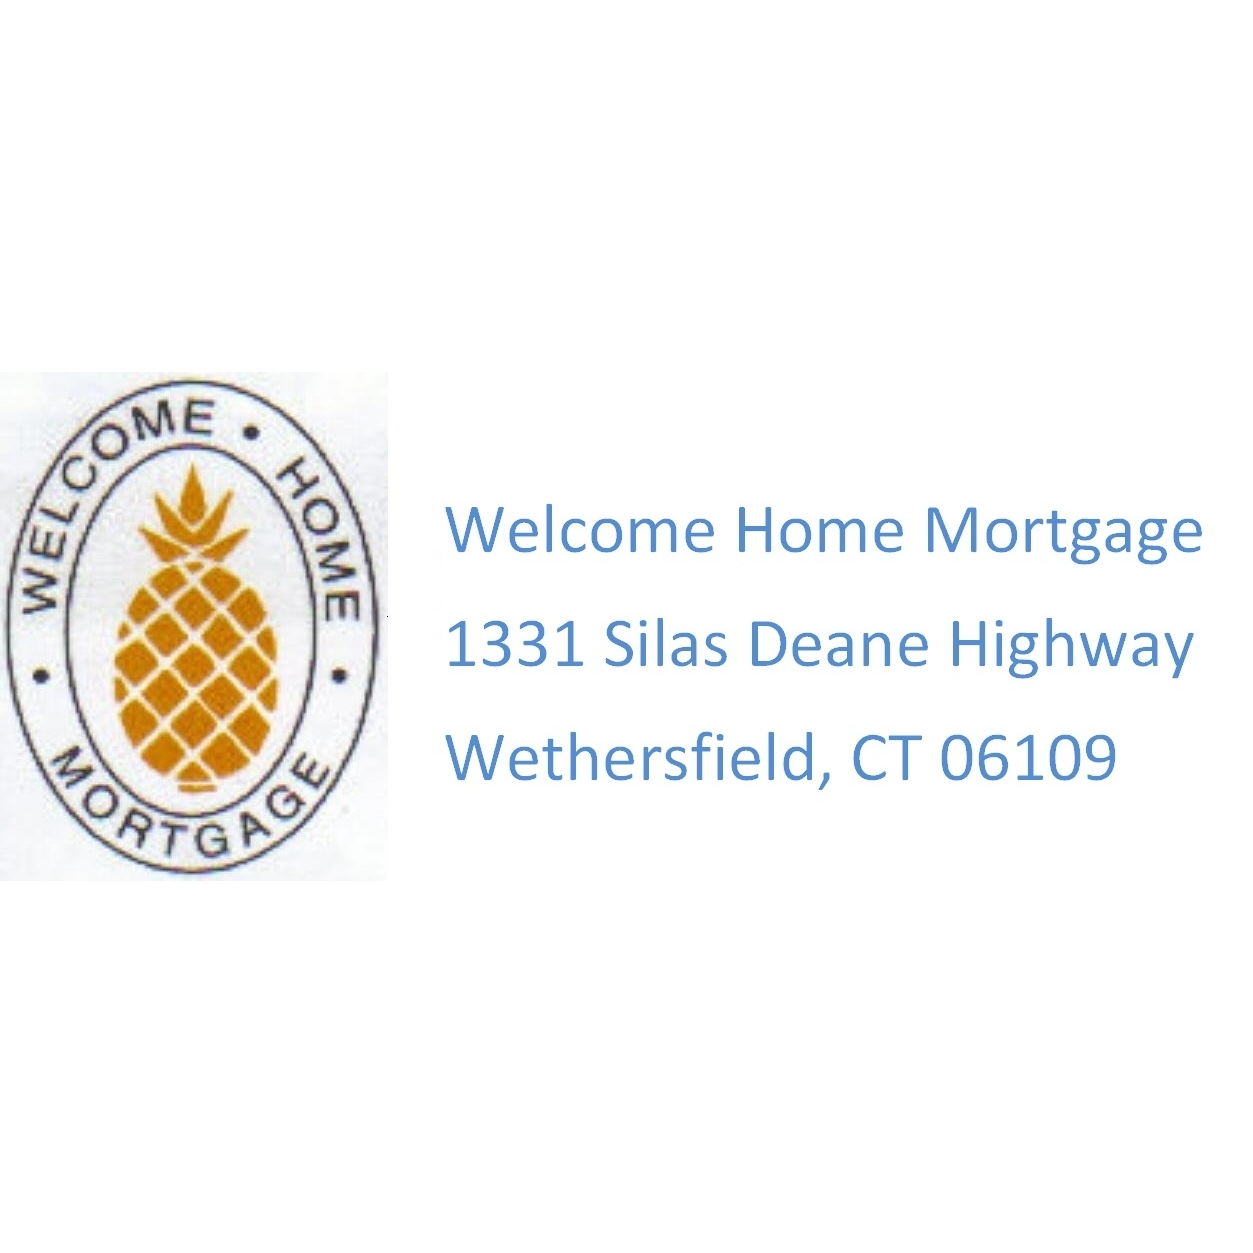 Welcome Home Mortgage LLC